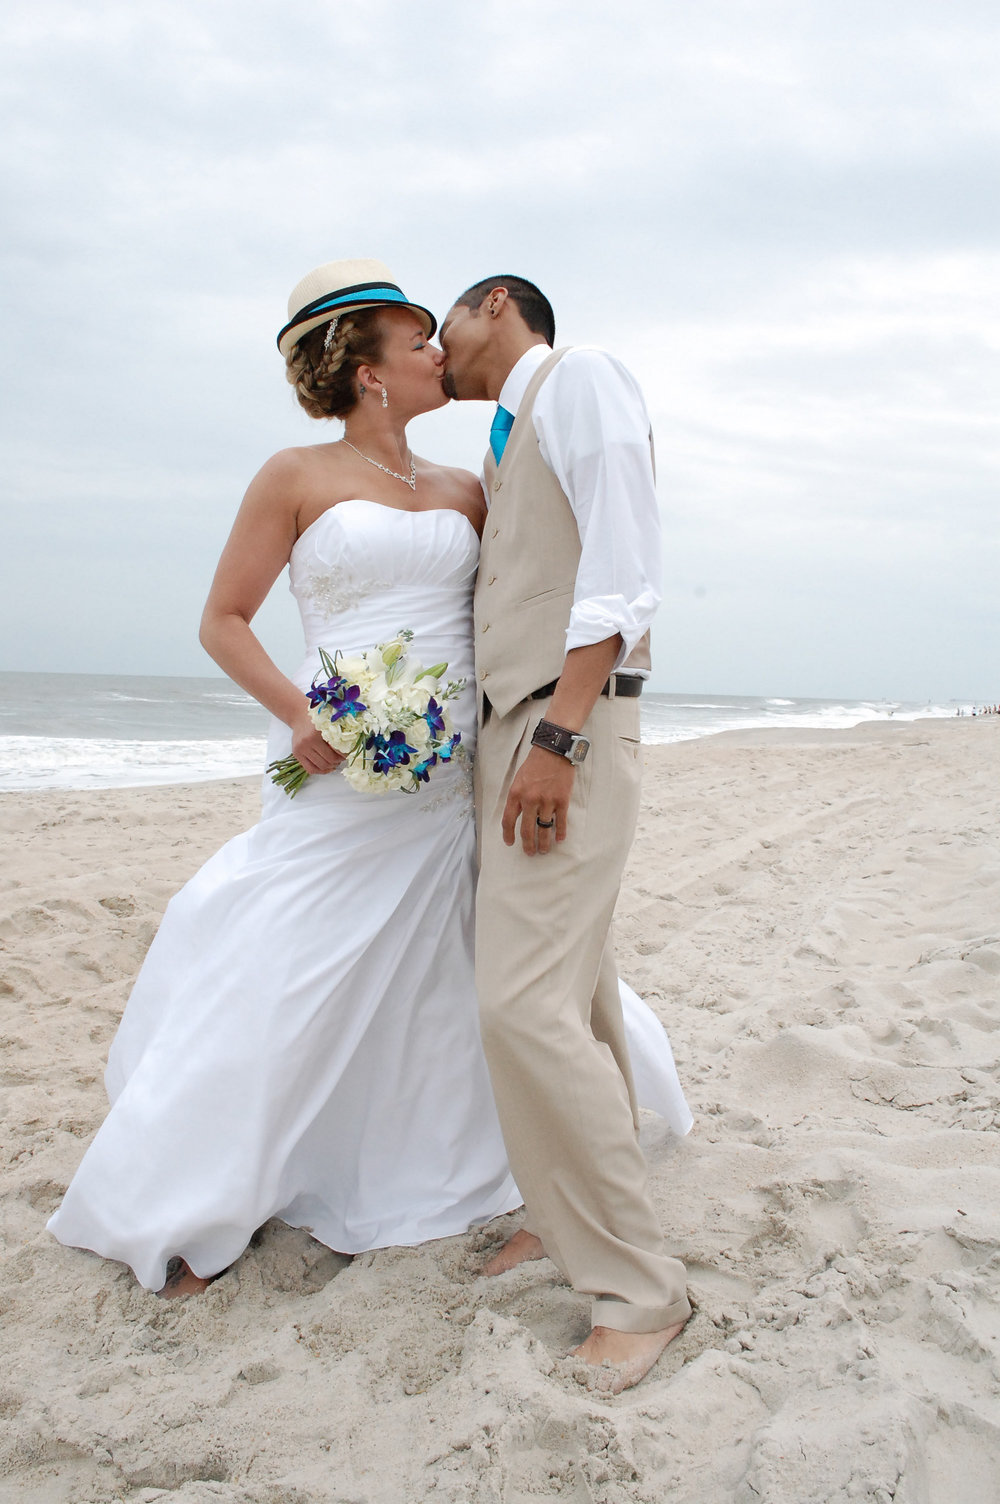 Kiss on the Beach.